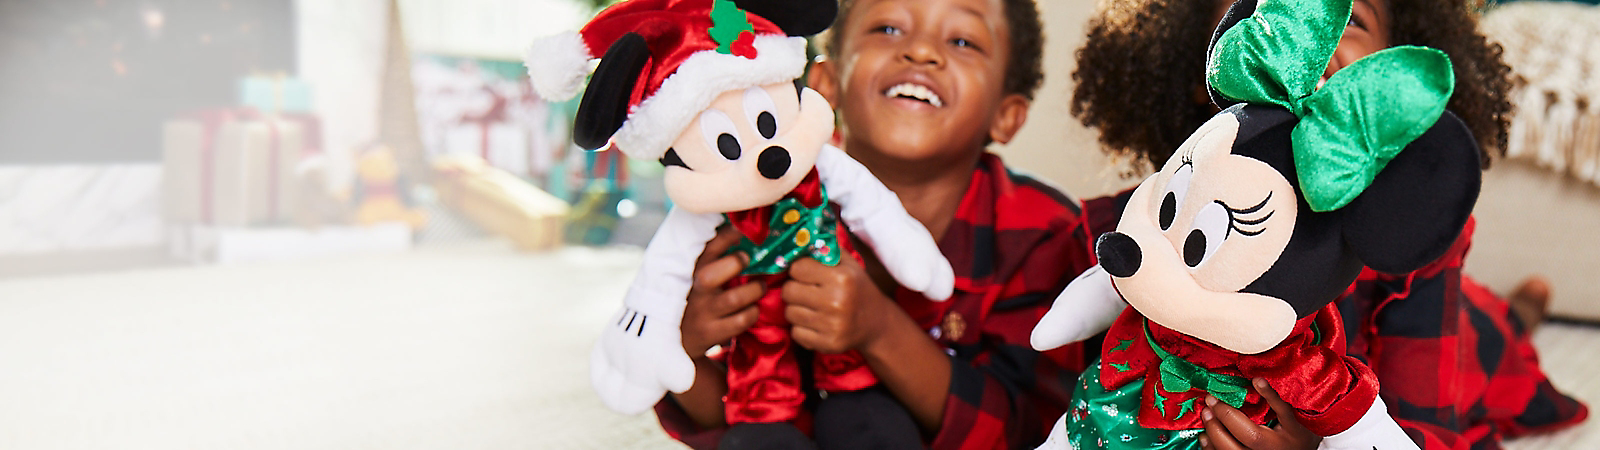 $12.50 Mickey or Minnie Mouse<br>Holiday Plush